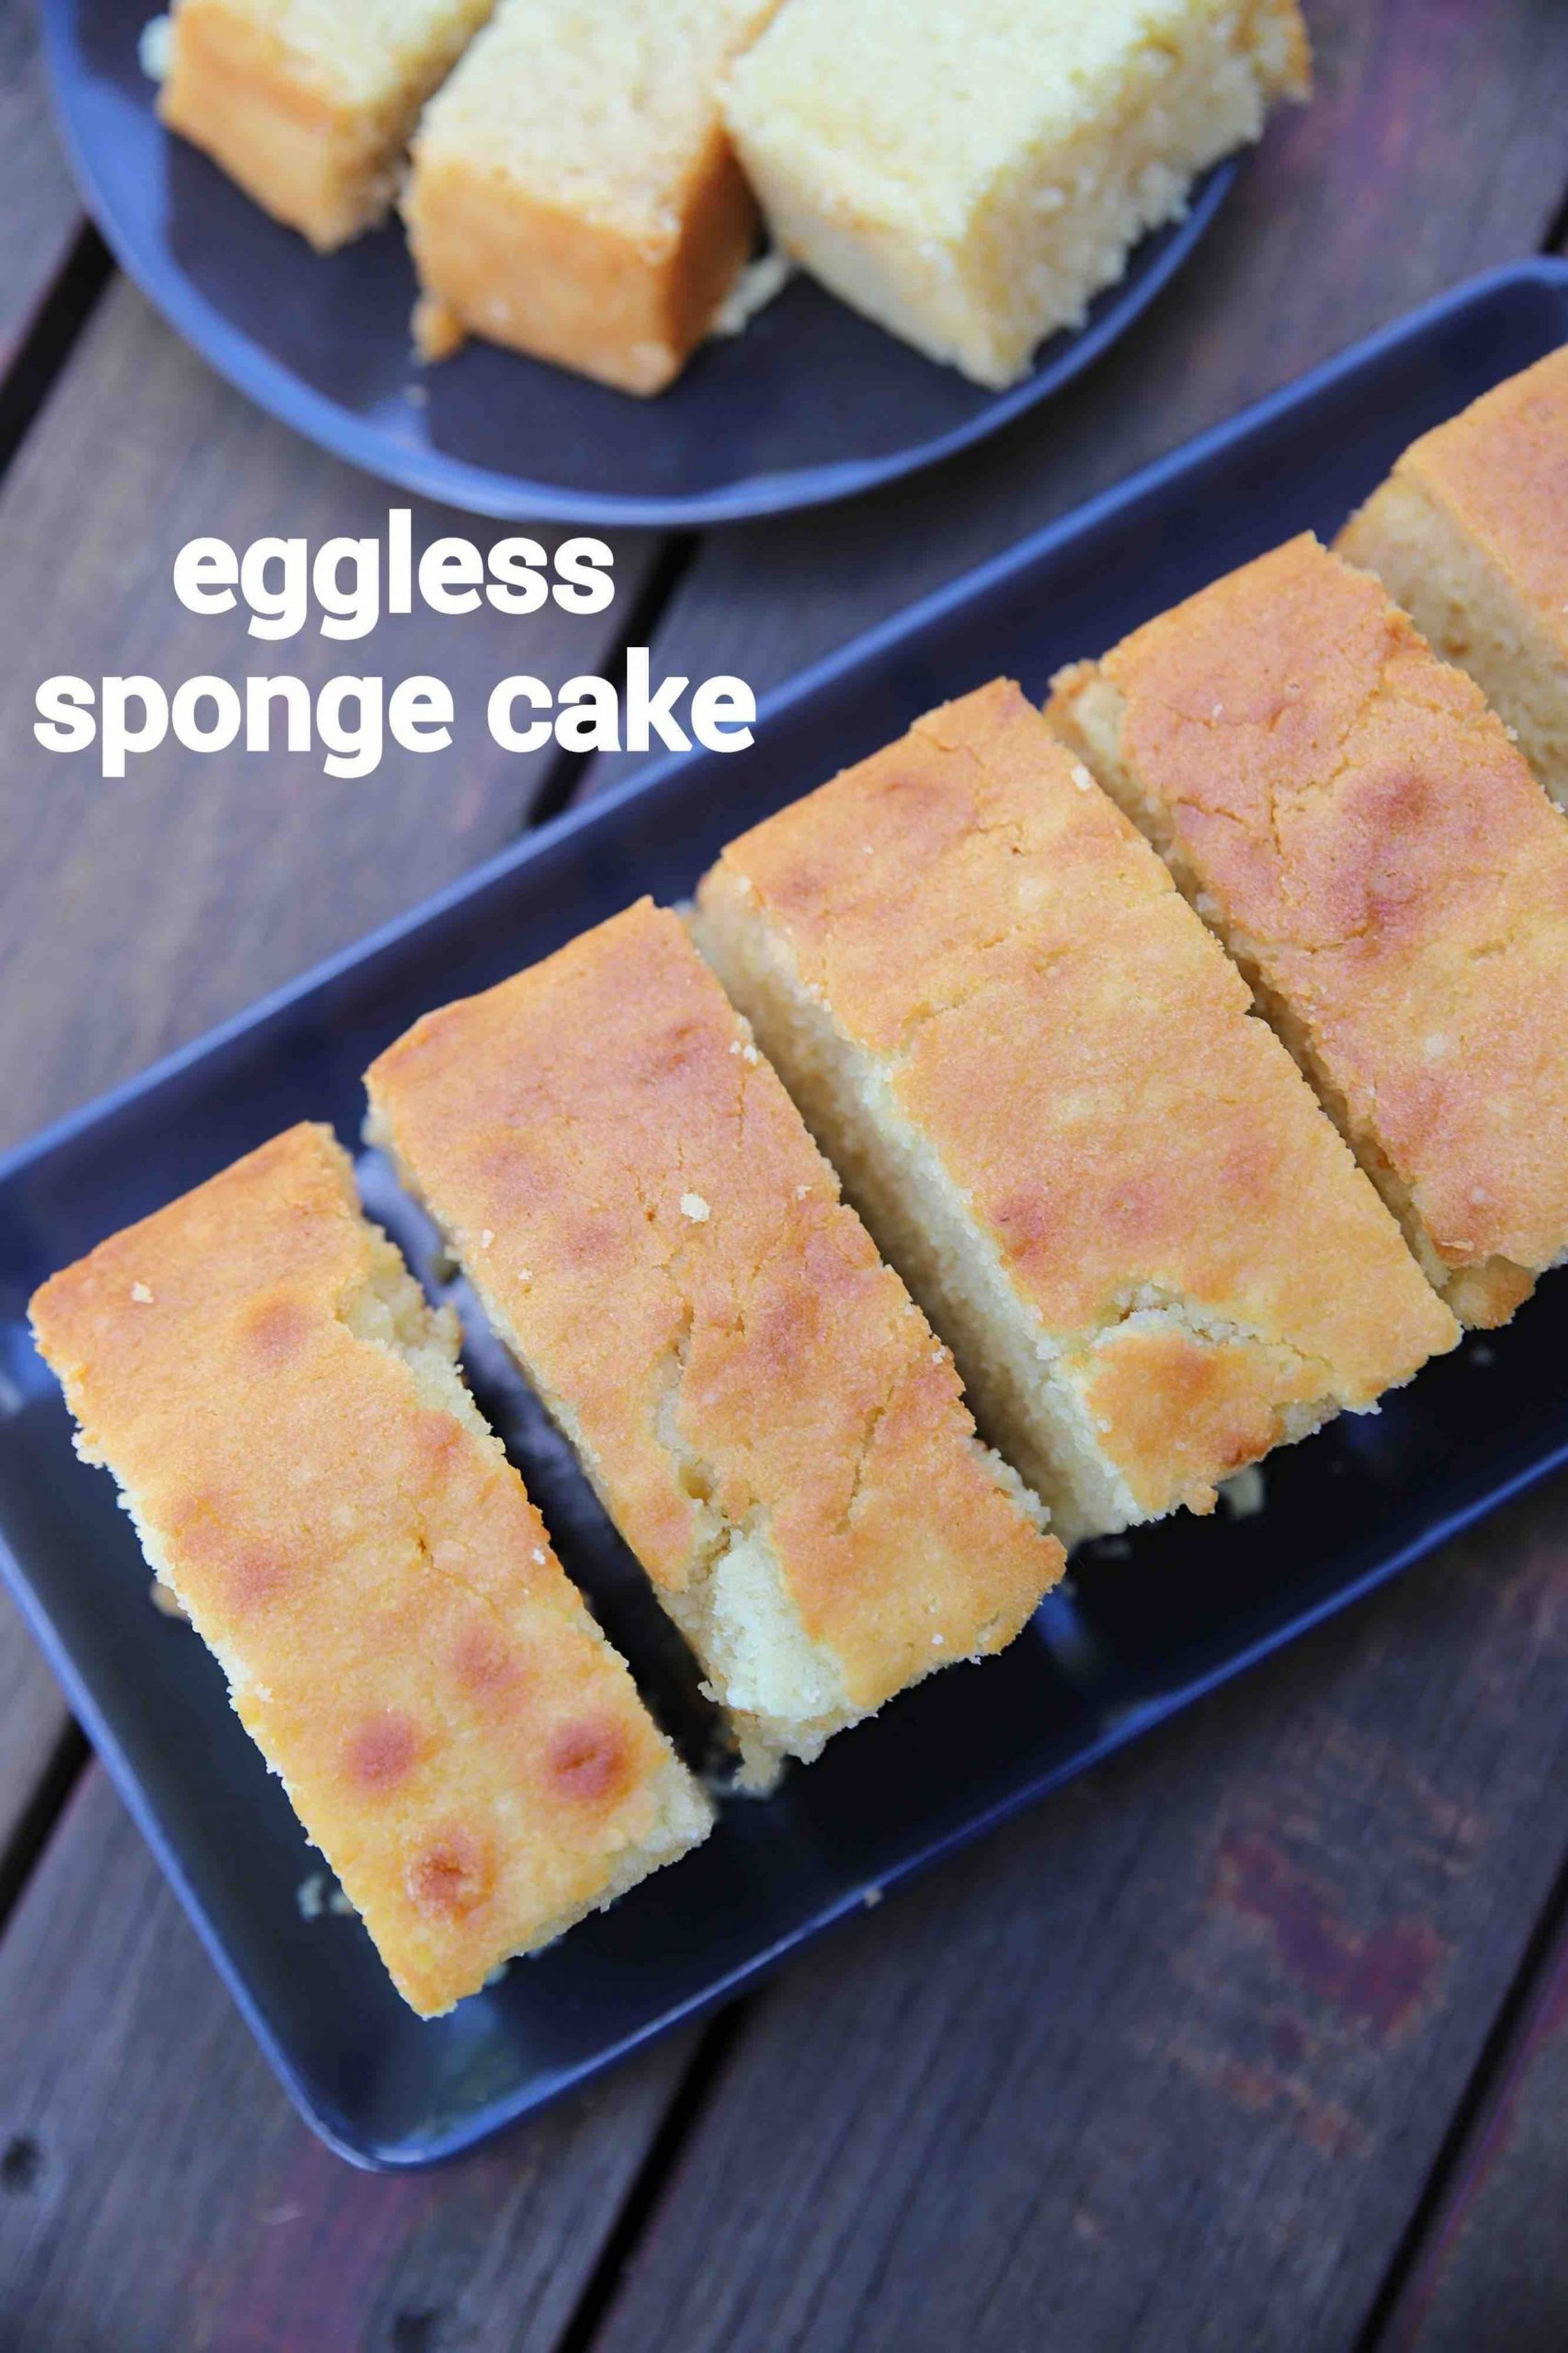 sponge cake recipe | eggless sponge cake | plain cake recipe